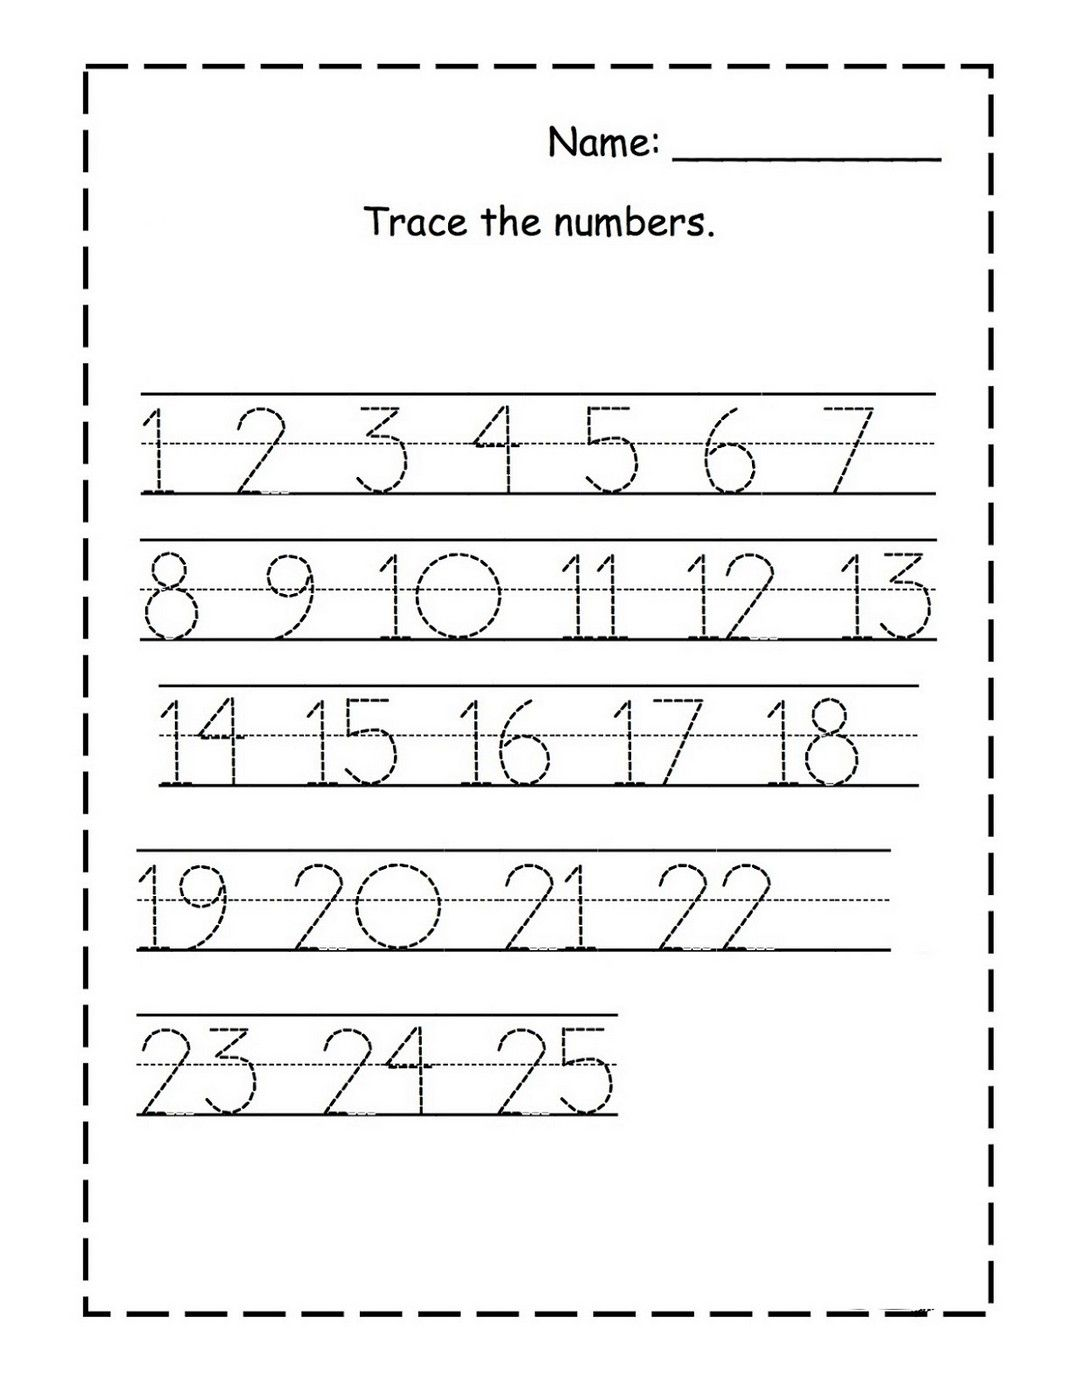 Workbooks trace numbers worksheets : tracing numbers 1-25 for kg page | Kids Worksheets Printable ...